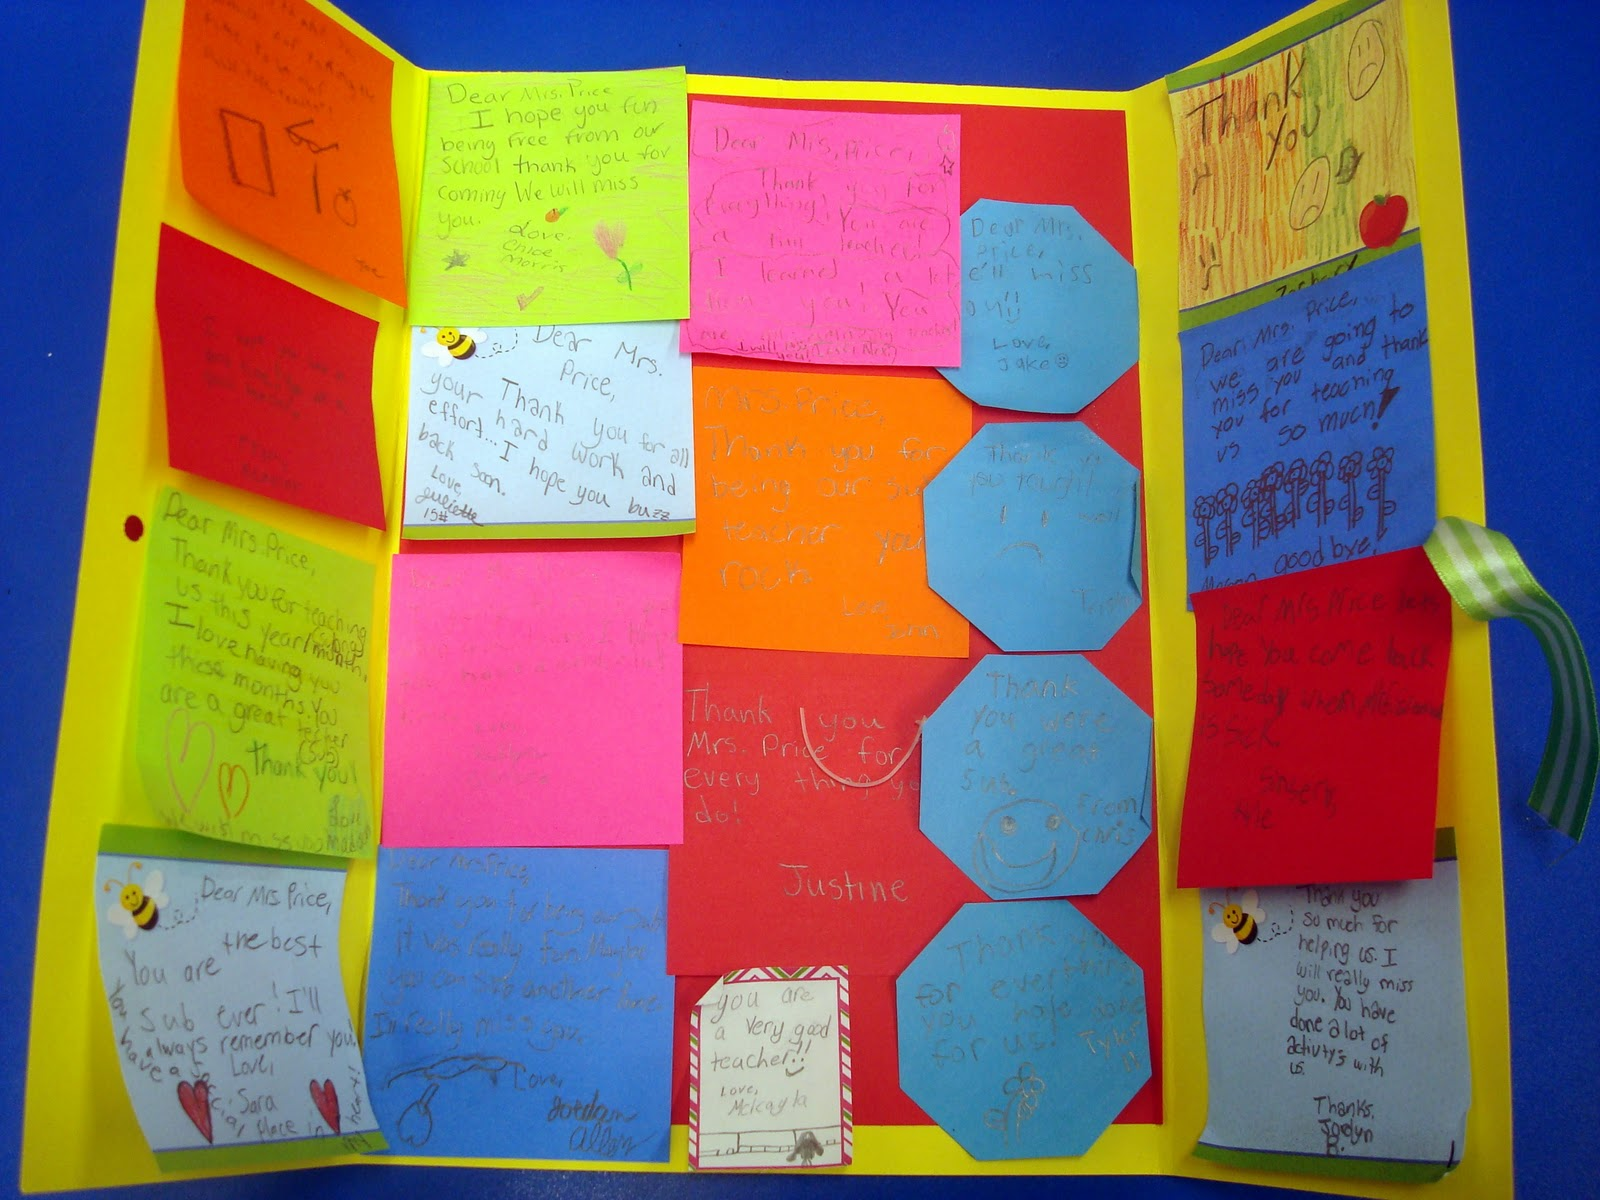 Giant Thank You Card | 25+ Post It Note DIY Ideas